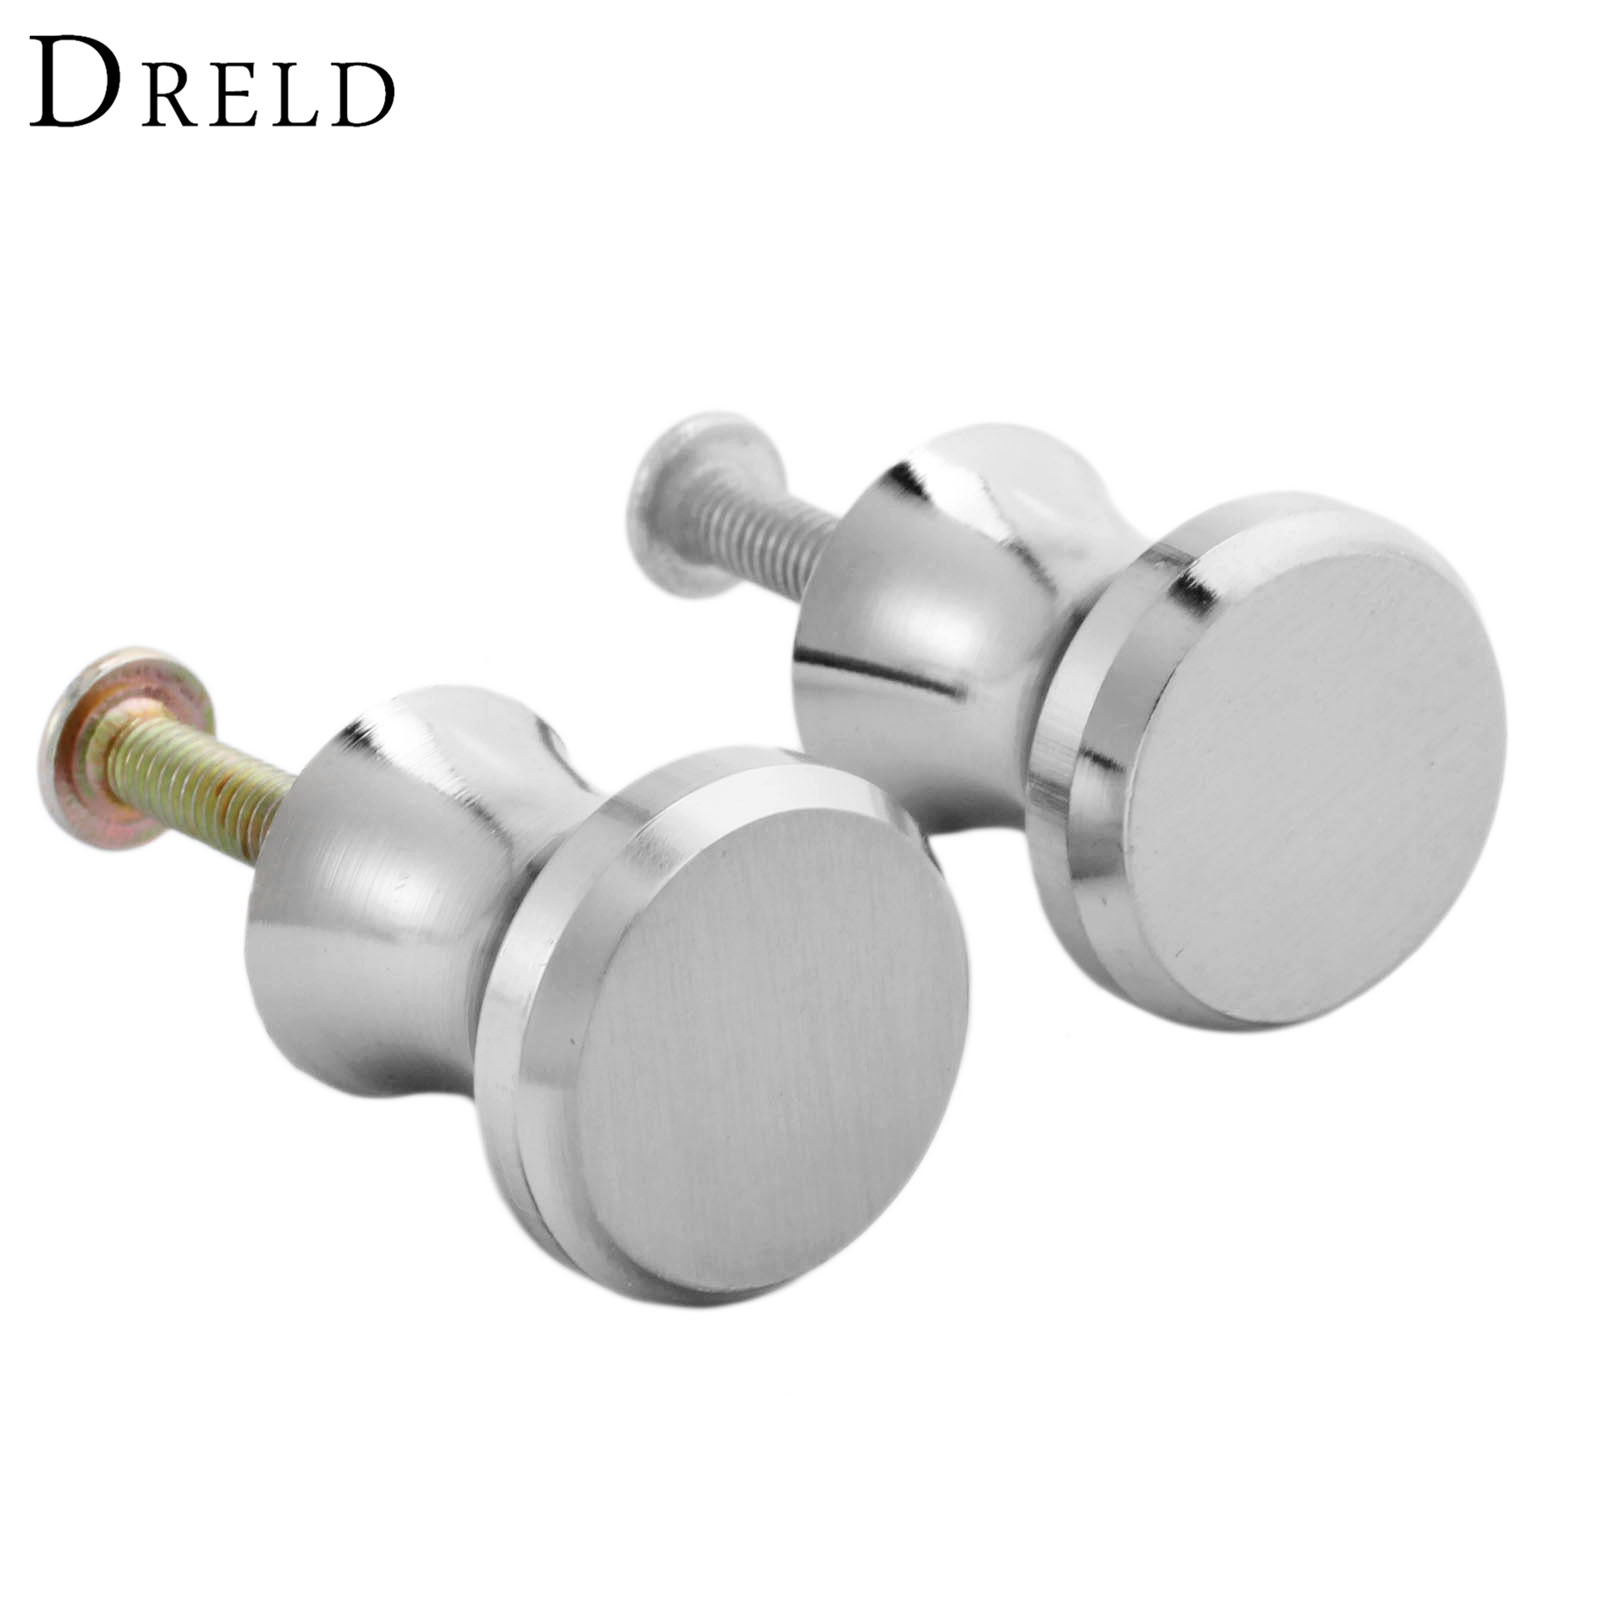 DRELD 2Pcs Furniture Pull Handles Aluminum Cupboard Drawer Cabinet Knobs and Handles Door Kitchen Pull Handles Furniture Fitting furniture drawer handles wardrobe door handle and knobs cabinet kitchen hardware pull gold silver long hole spacing c c 96 224mm